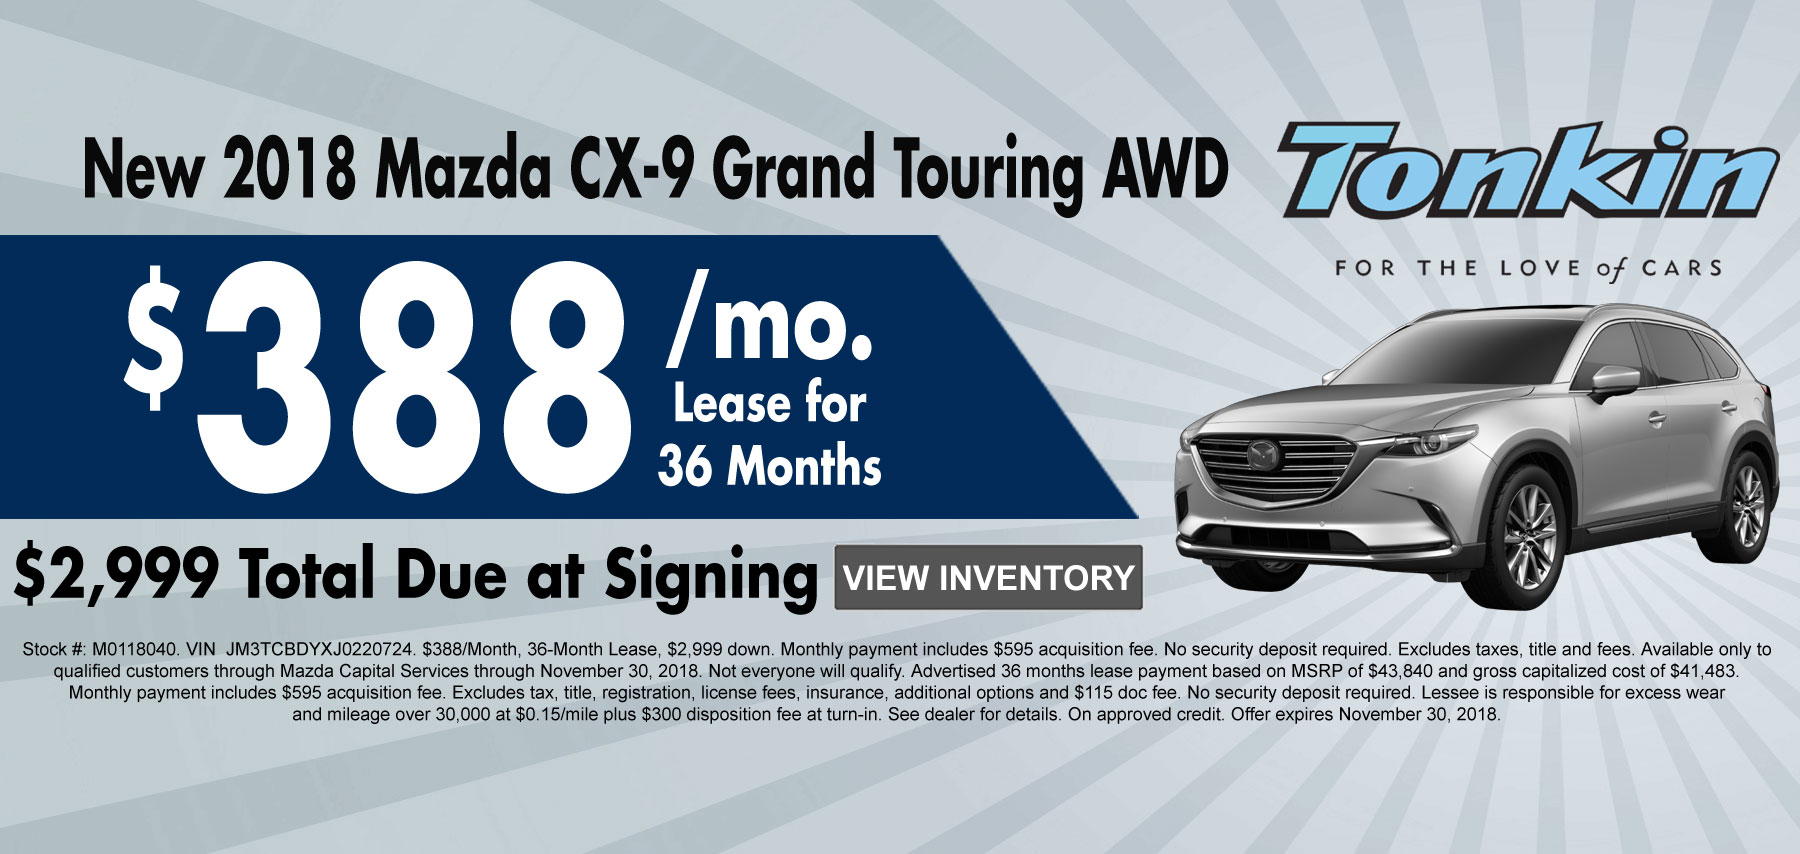 New 2018 Mazda CX-9 Grand Touring AWD Lease